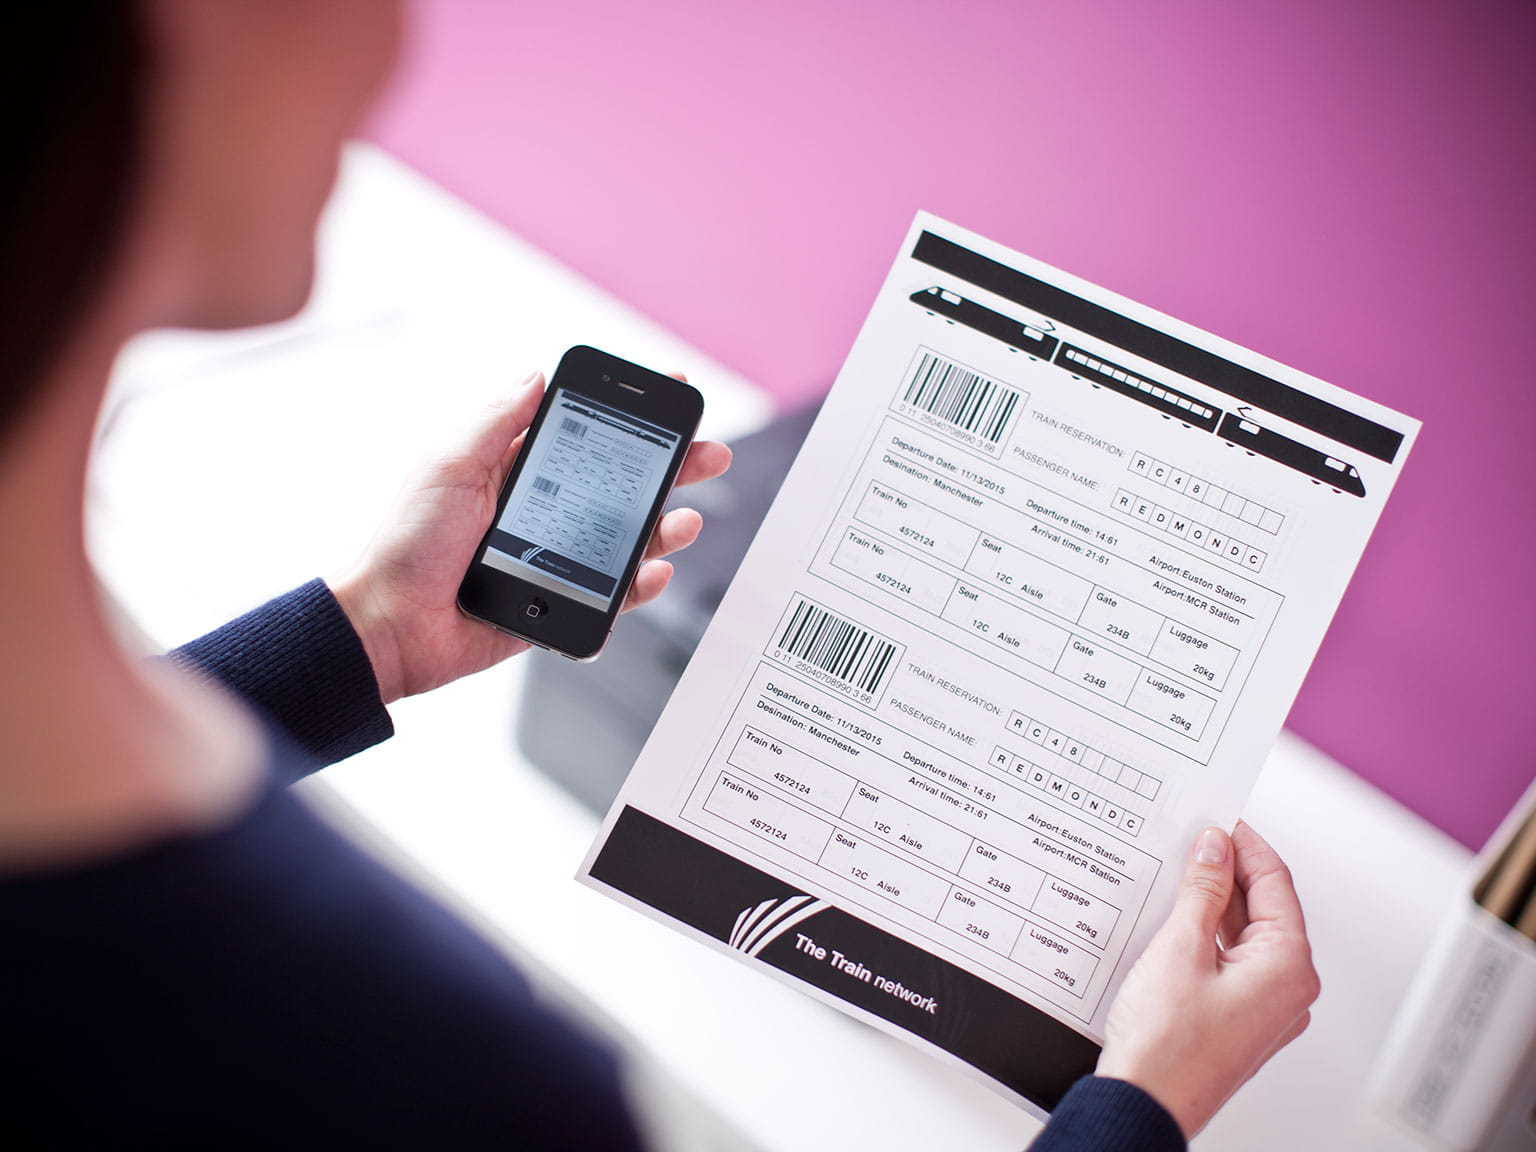 iphone held next to a document